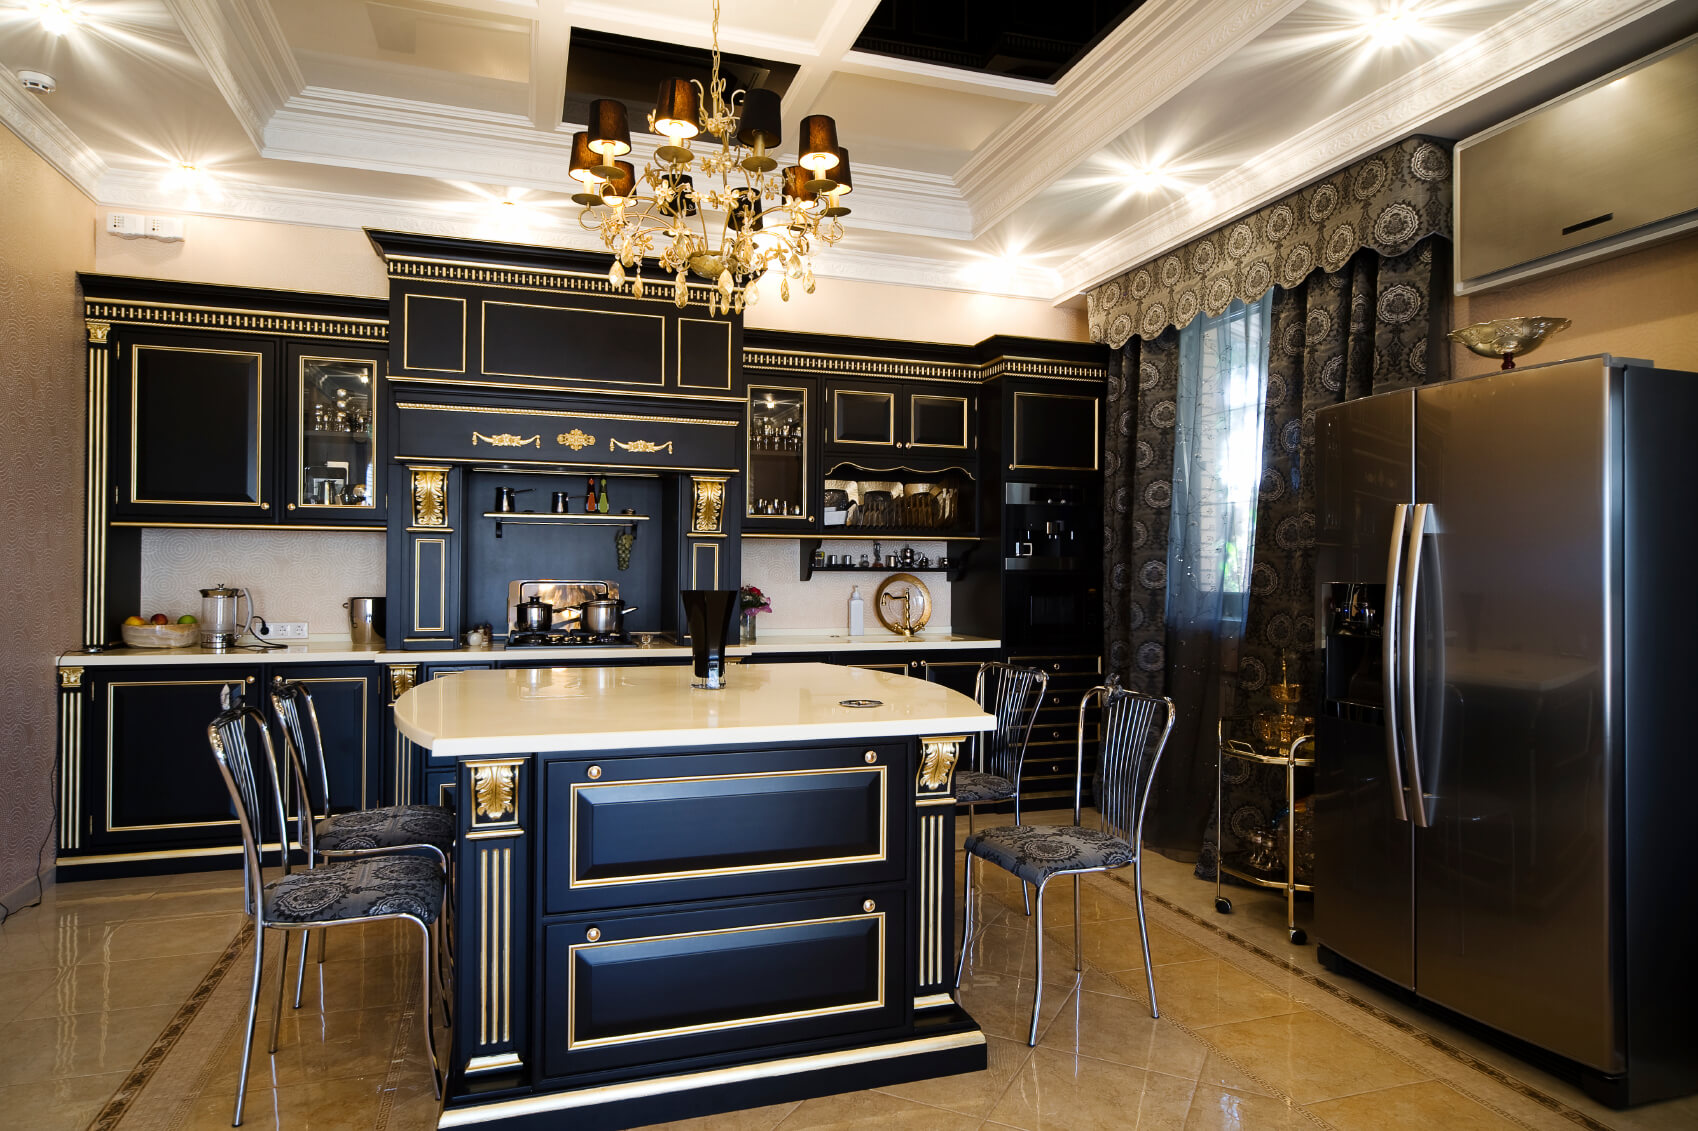 dark kitchen cabinets kitchen counters and backsplash Ultra luxurious kitchen features gilded black wood cabinetry over beige marble flooring White marble countertops